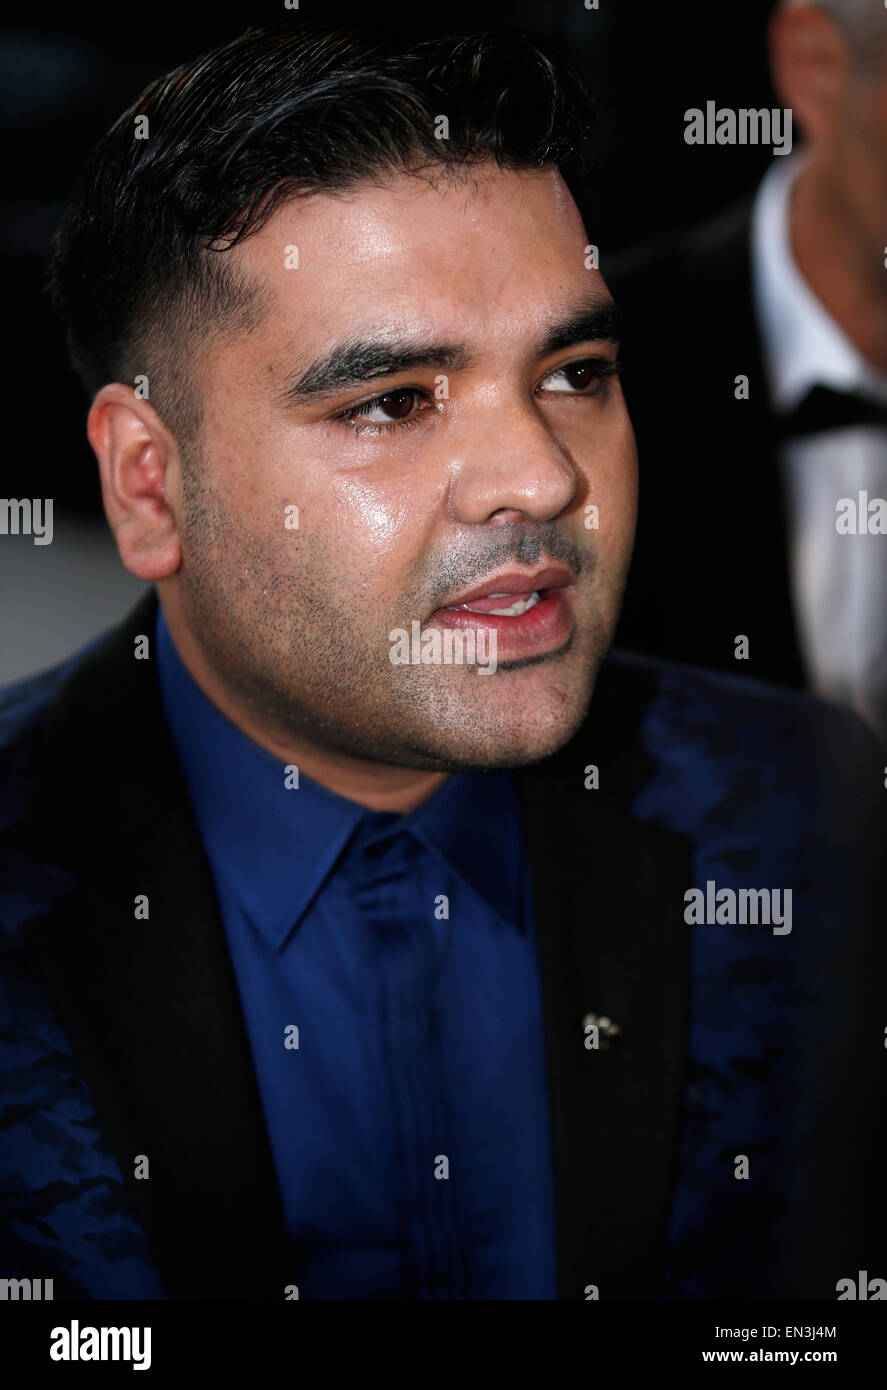 Shahid Khan, known by his stage name Naughty Boy, arrives for an award ceremony in London April 2015 Stock Photo